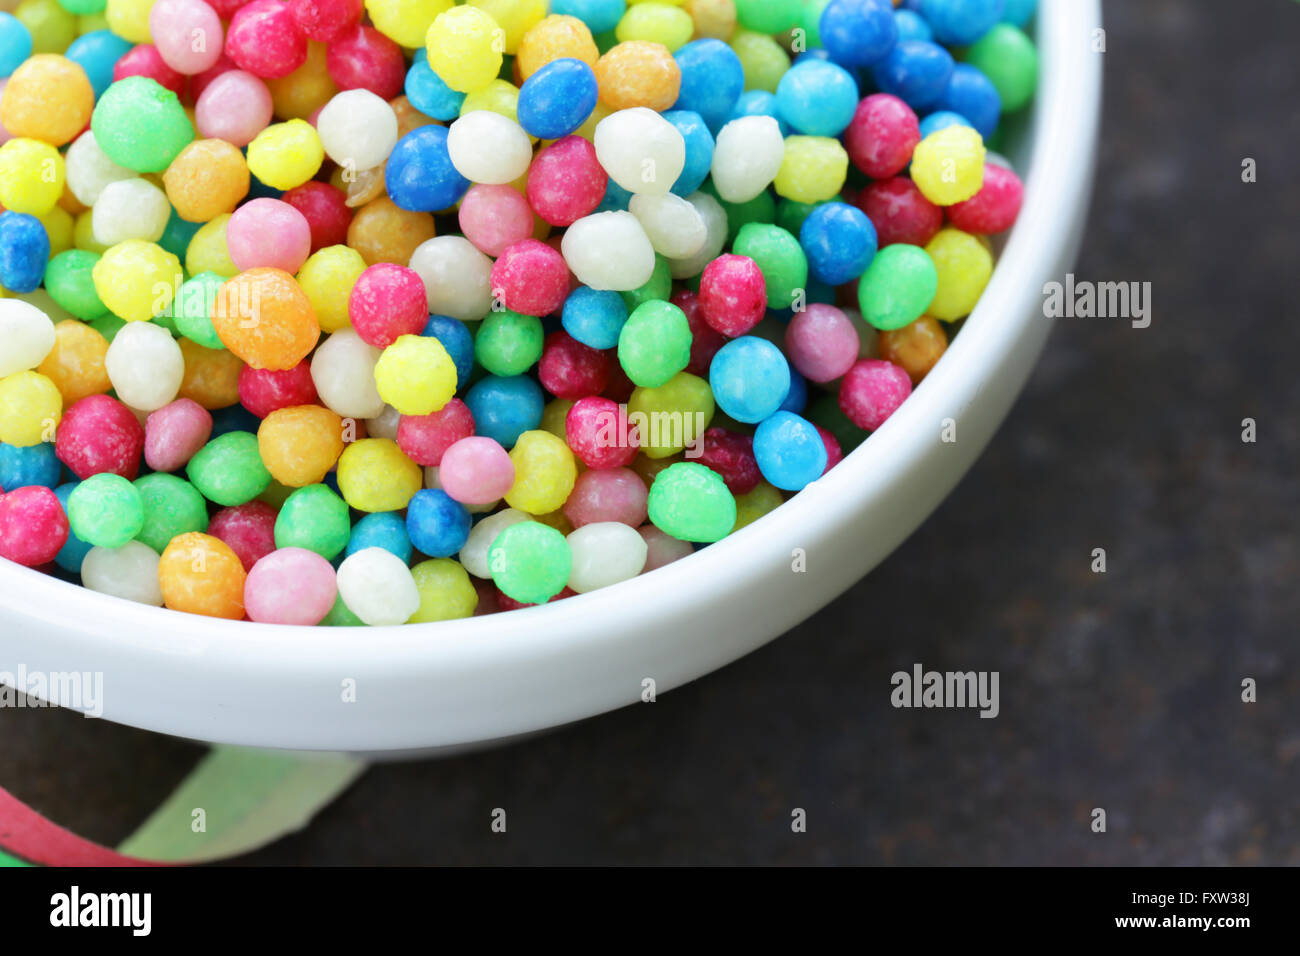 multi-colored fruit jelly beans sweet candy topping - Stock Image